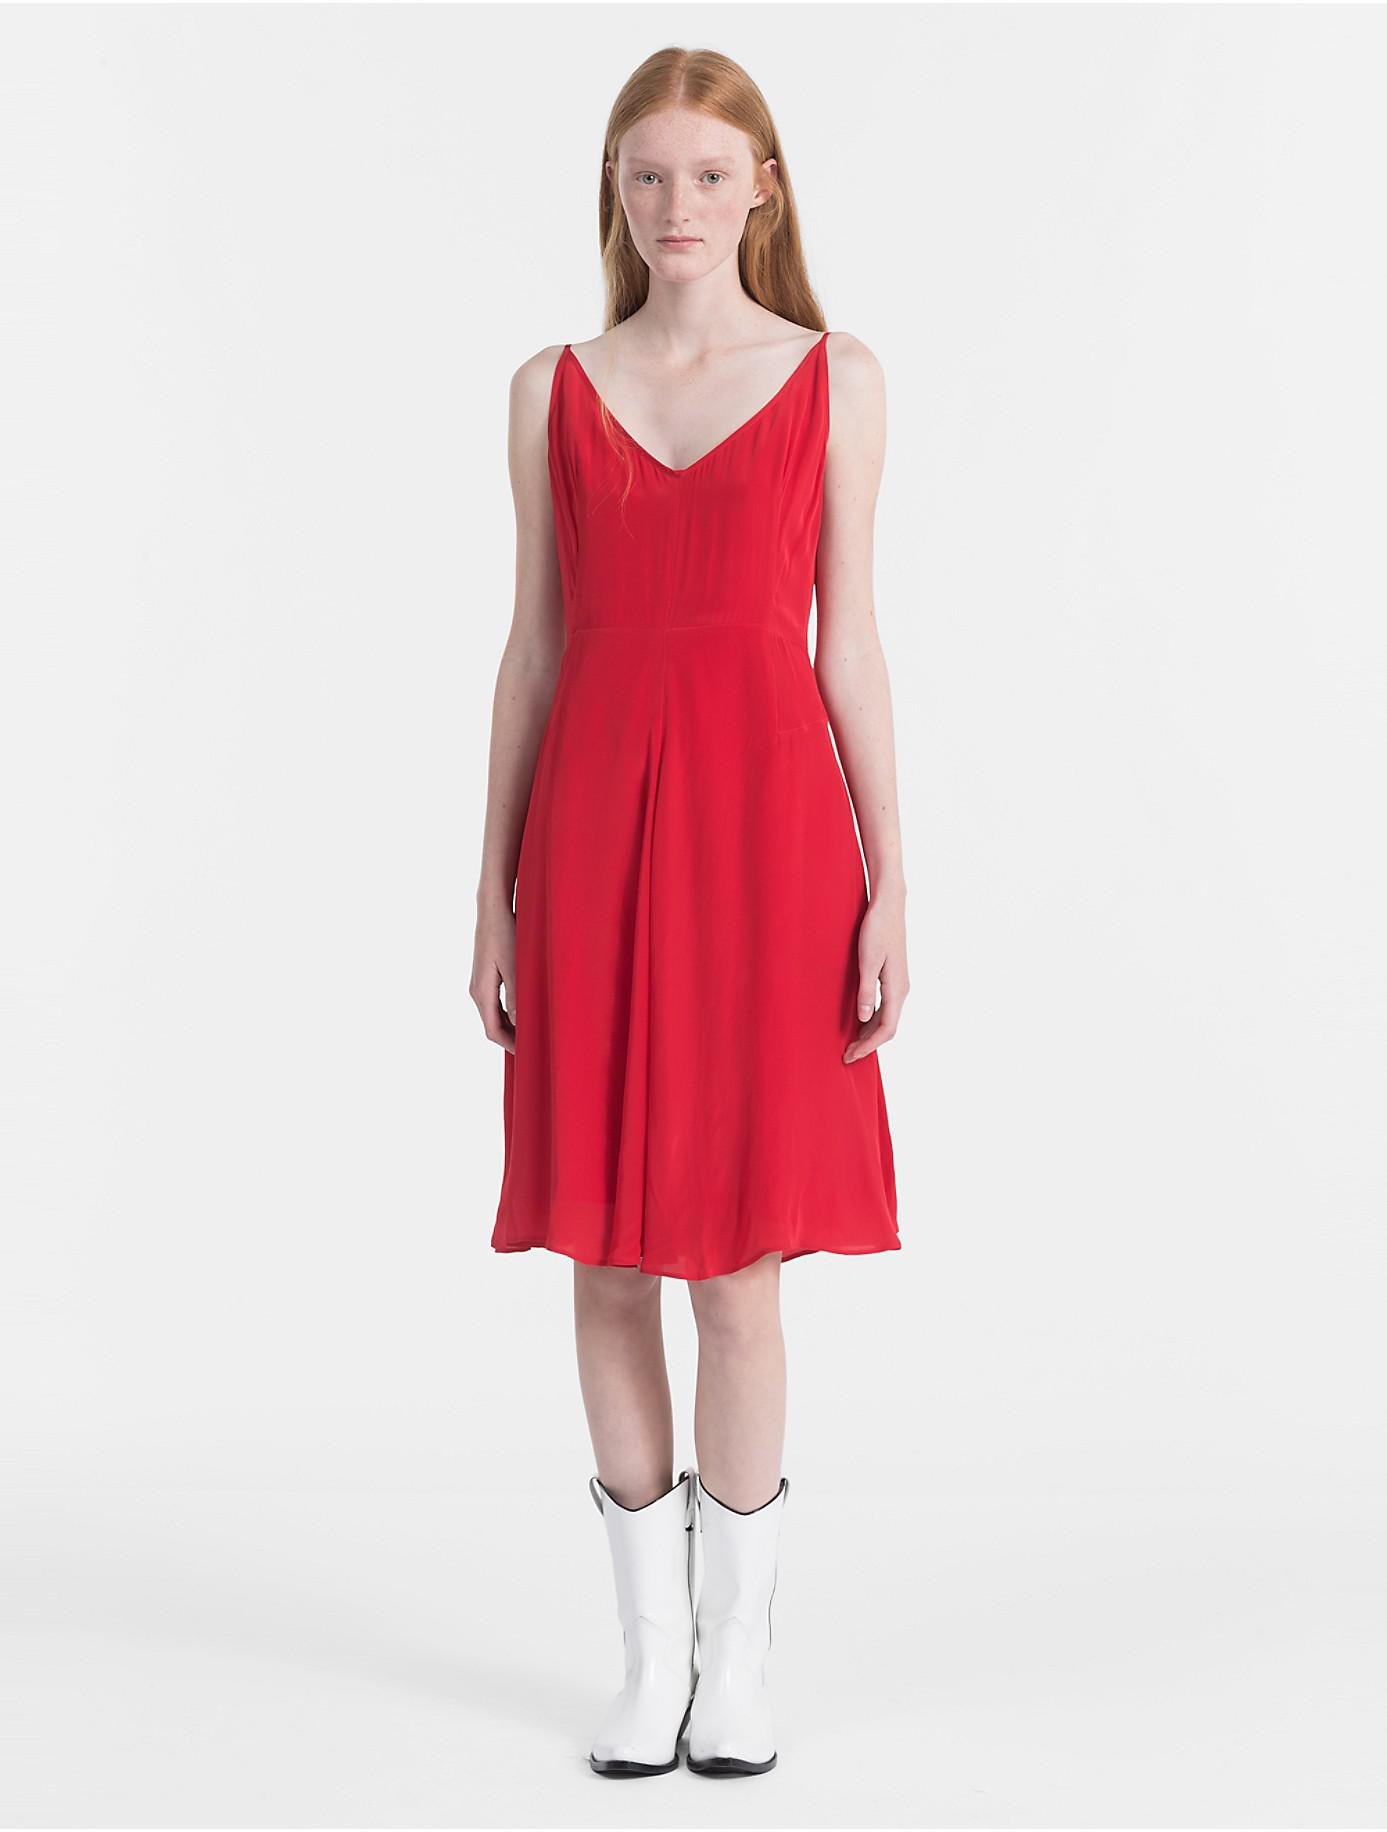 Crepe Slip Dress Calvin Klein New Arrival Huge Surprise Sale Affordable Buy Cheap Visit Free Shipping Many Kinds Of dNI71